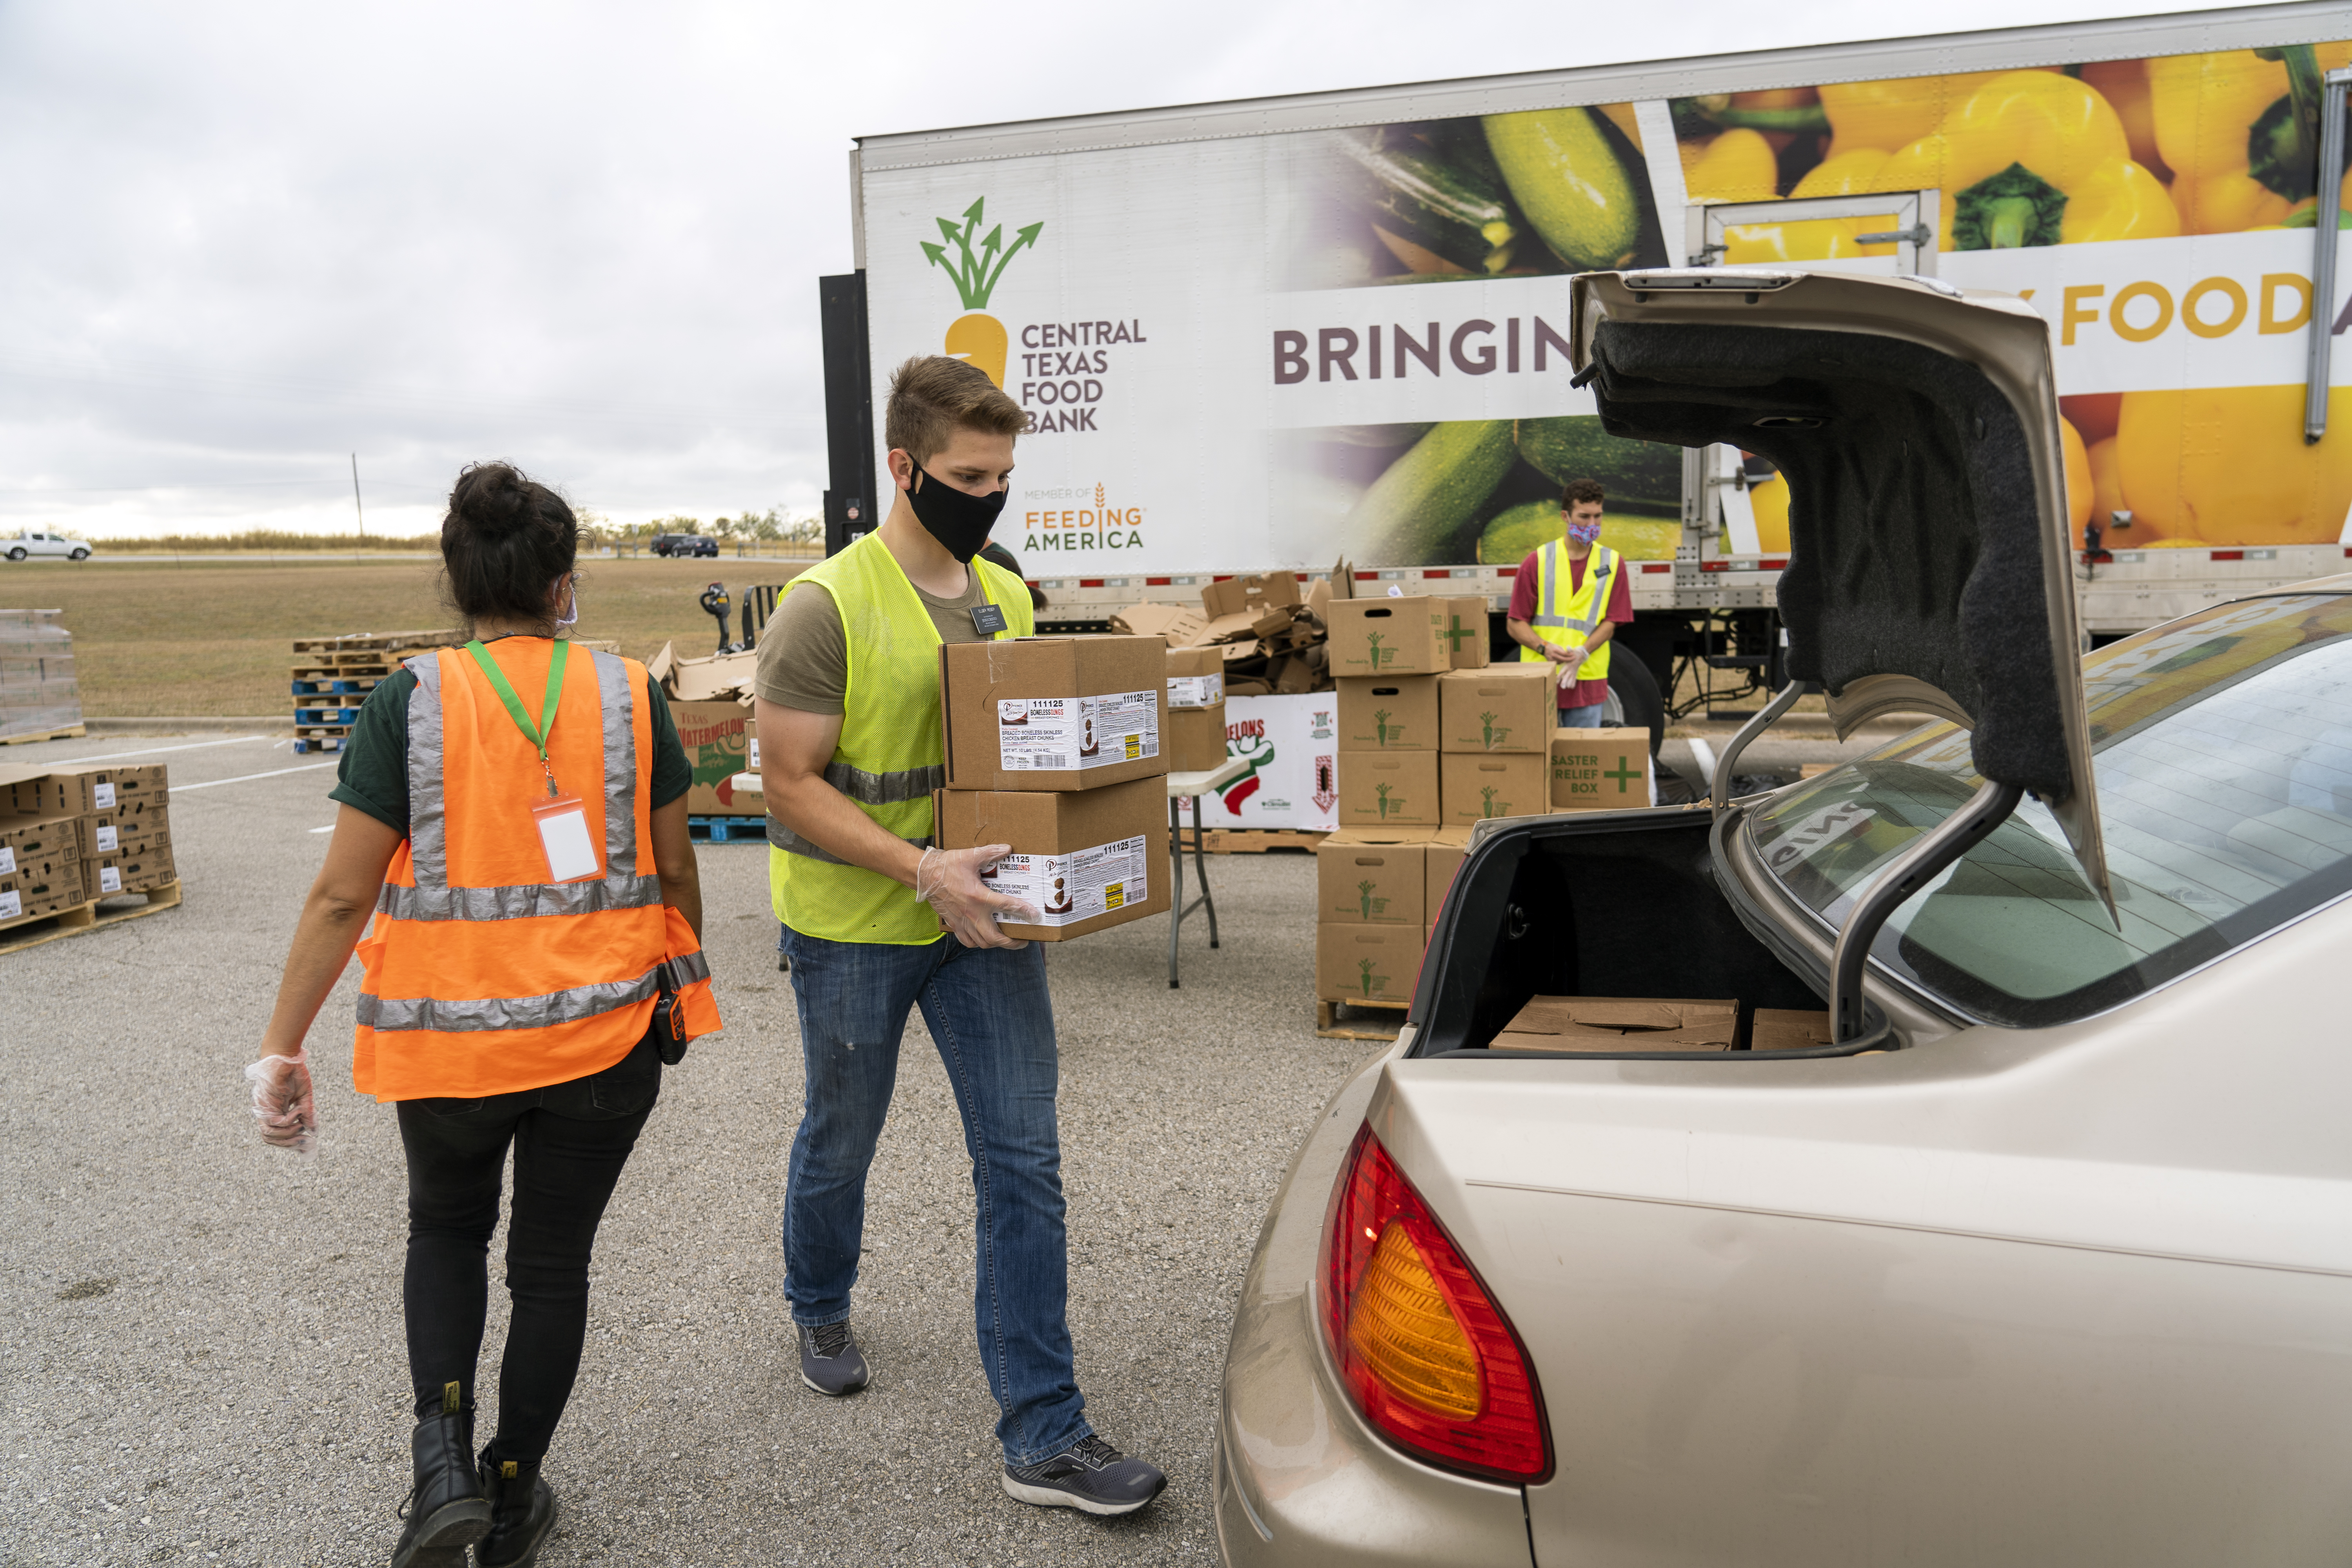 People load boxes of food off a large truck and into the open trunk of a car.